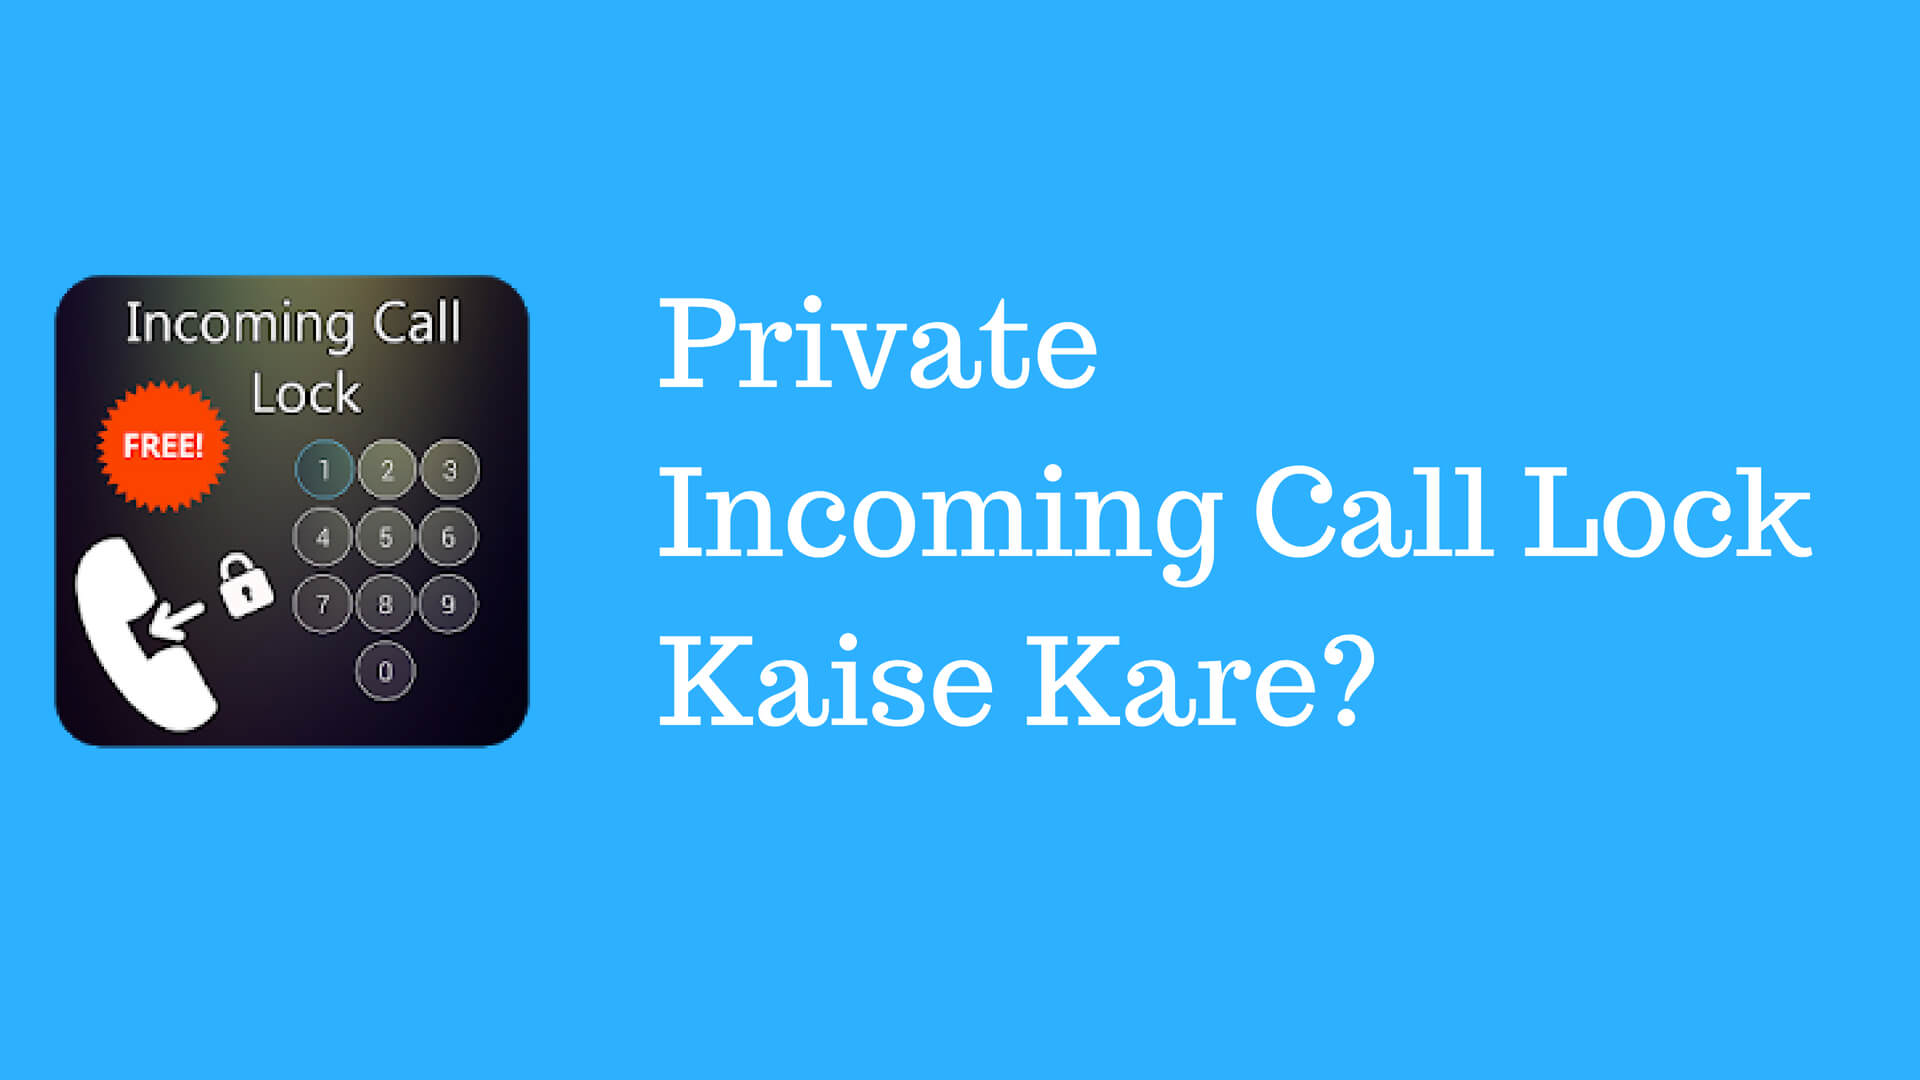 Private Incoming Call Lock